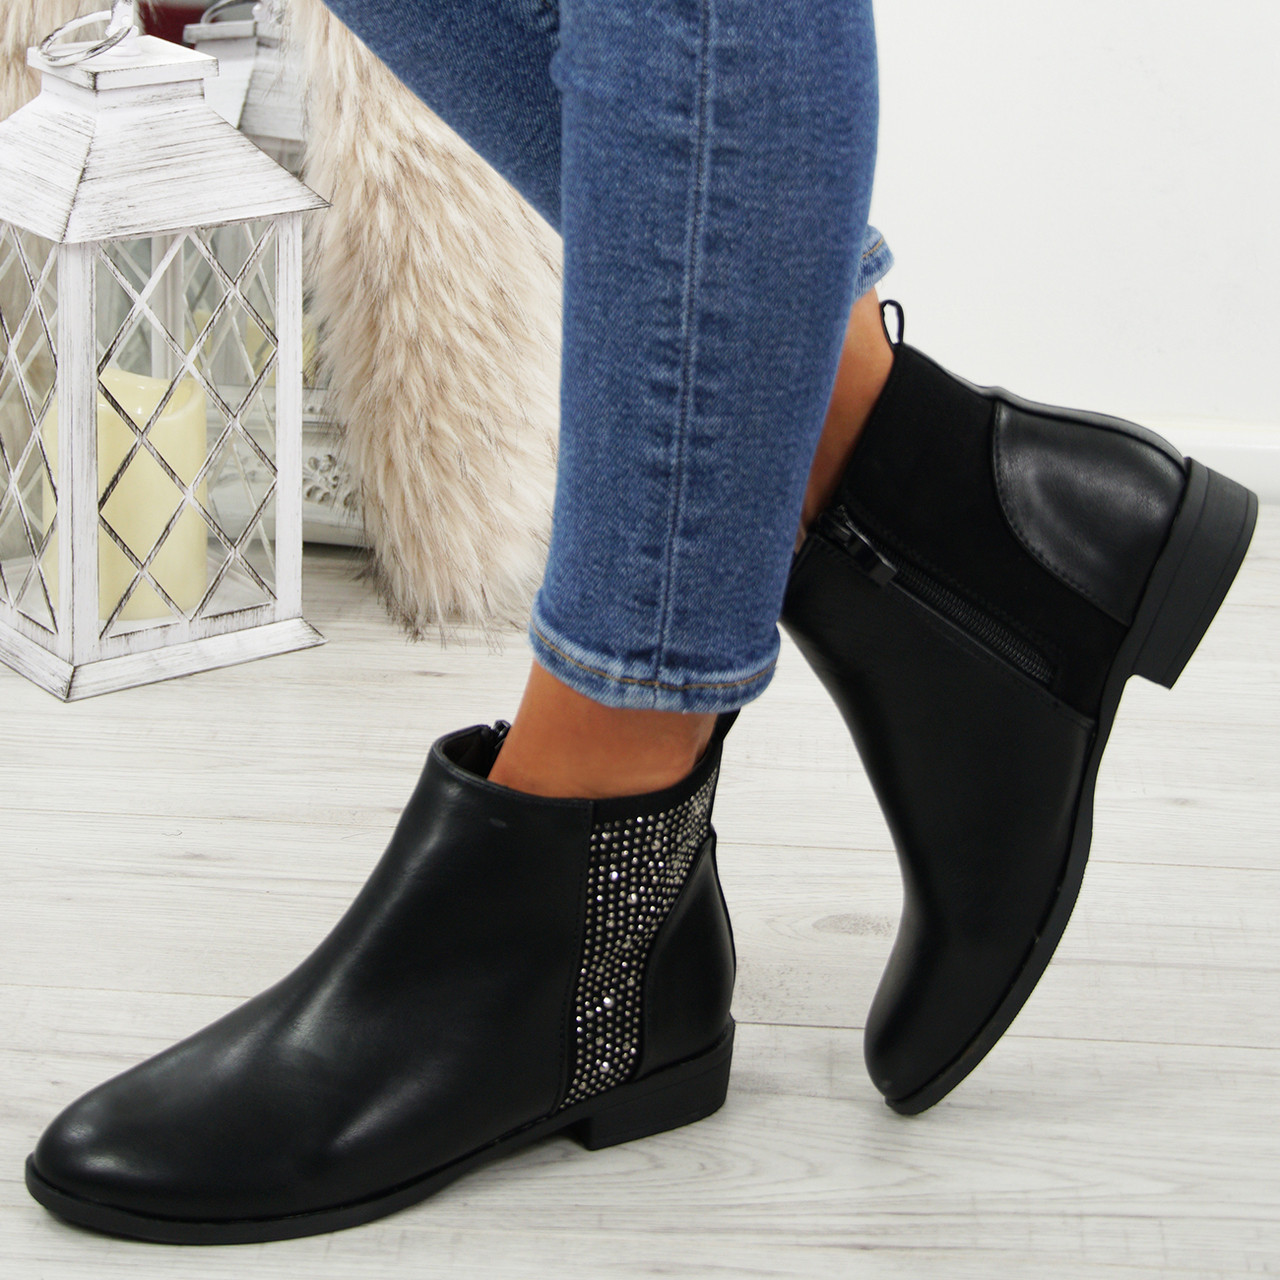 a04e47f4e220 Womens Studded Ankle Boots Ladies Zip Chelsea Low Flat Booties Winter Shoes  Size